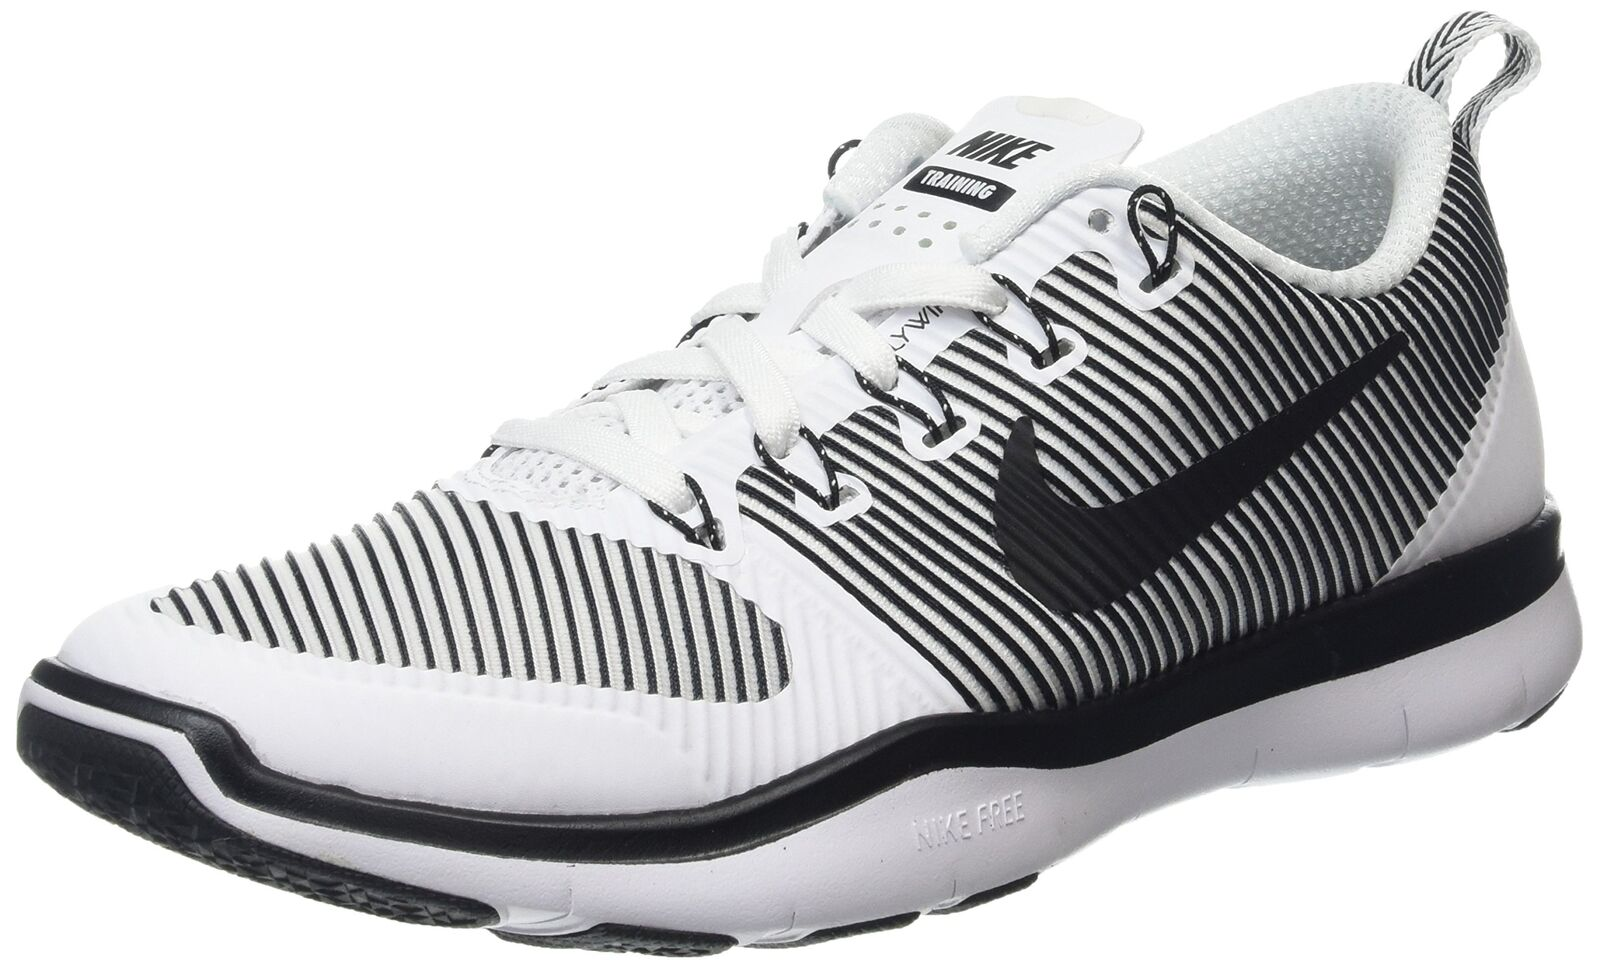 NIKE Men's Free Train Versatility Running Shoes White/Black 8.5 DPrice reduction US  Wild casual shoes